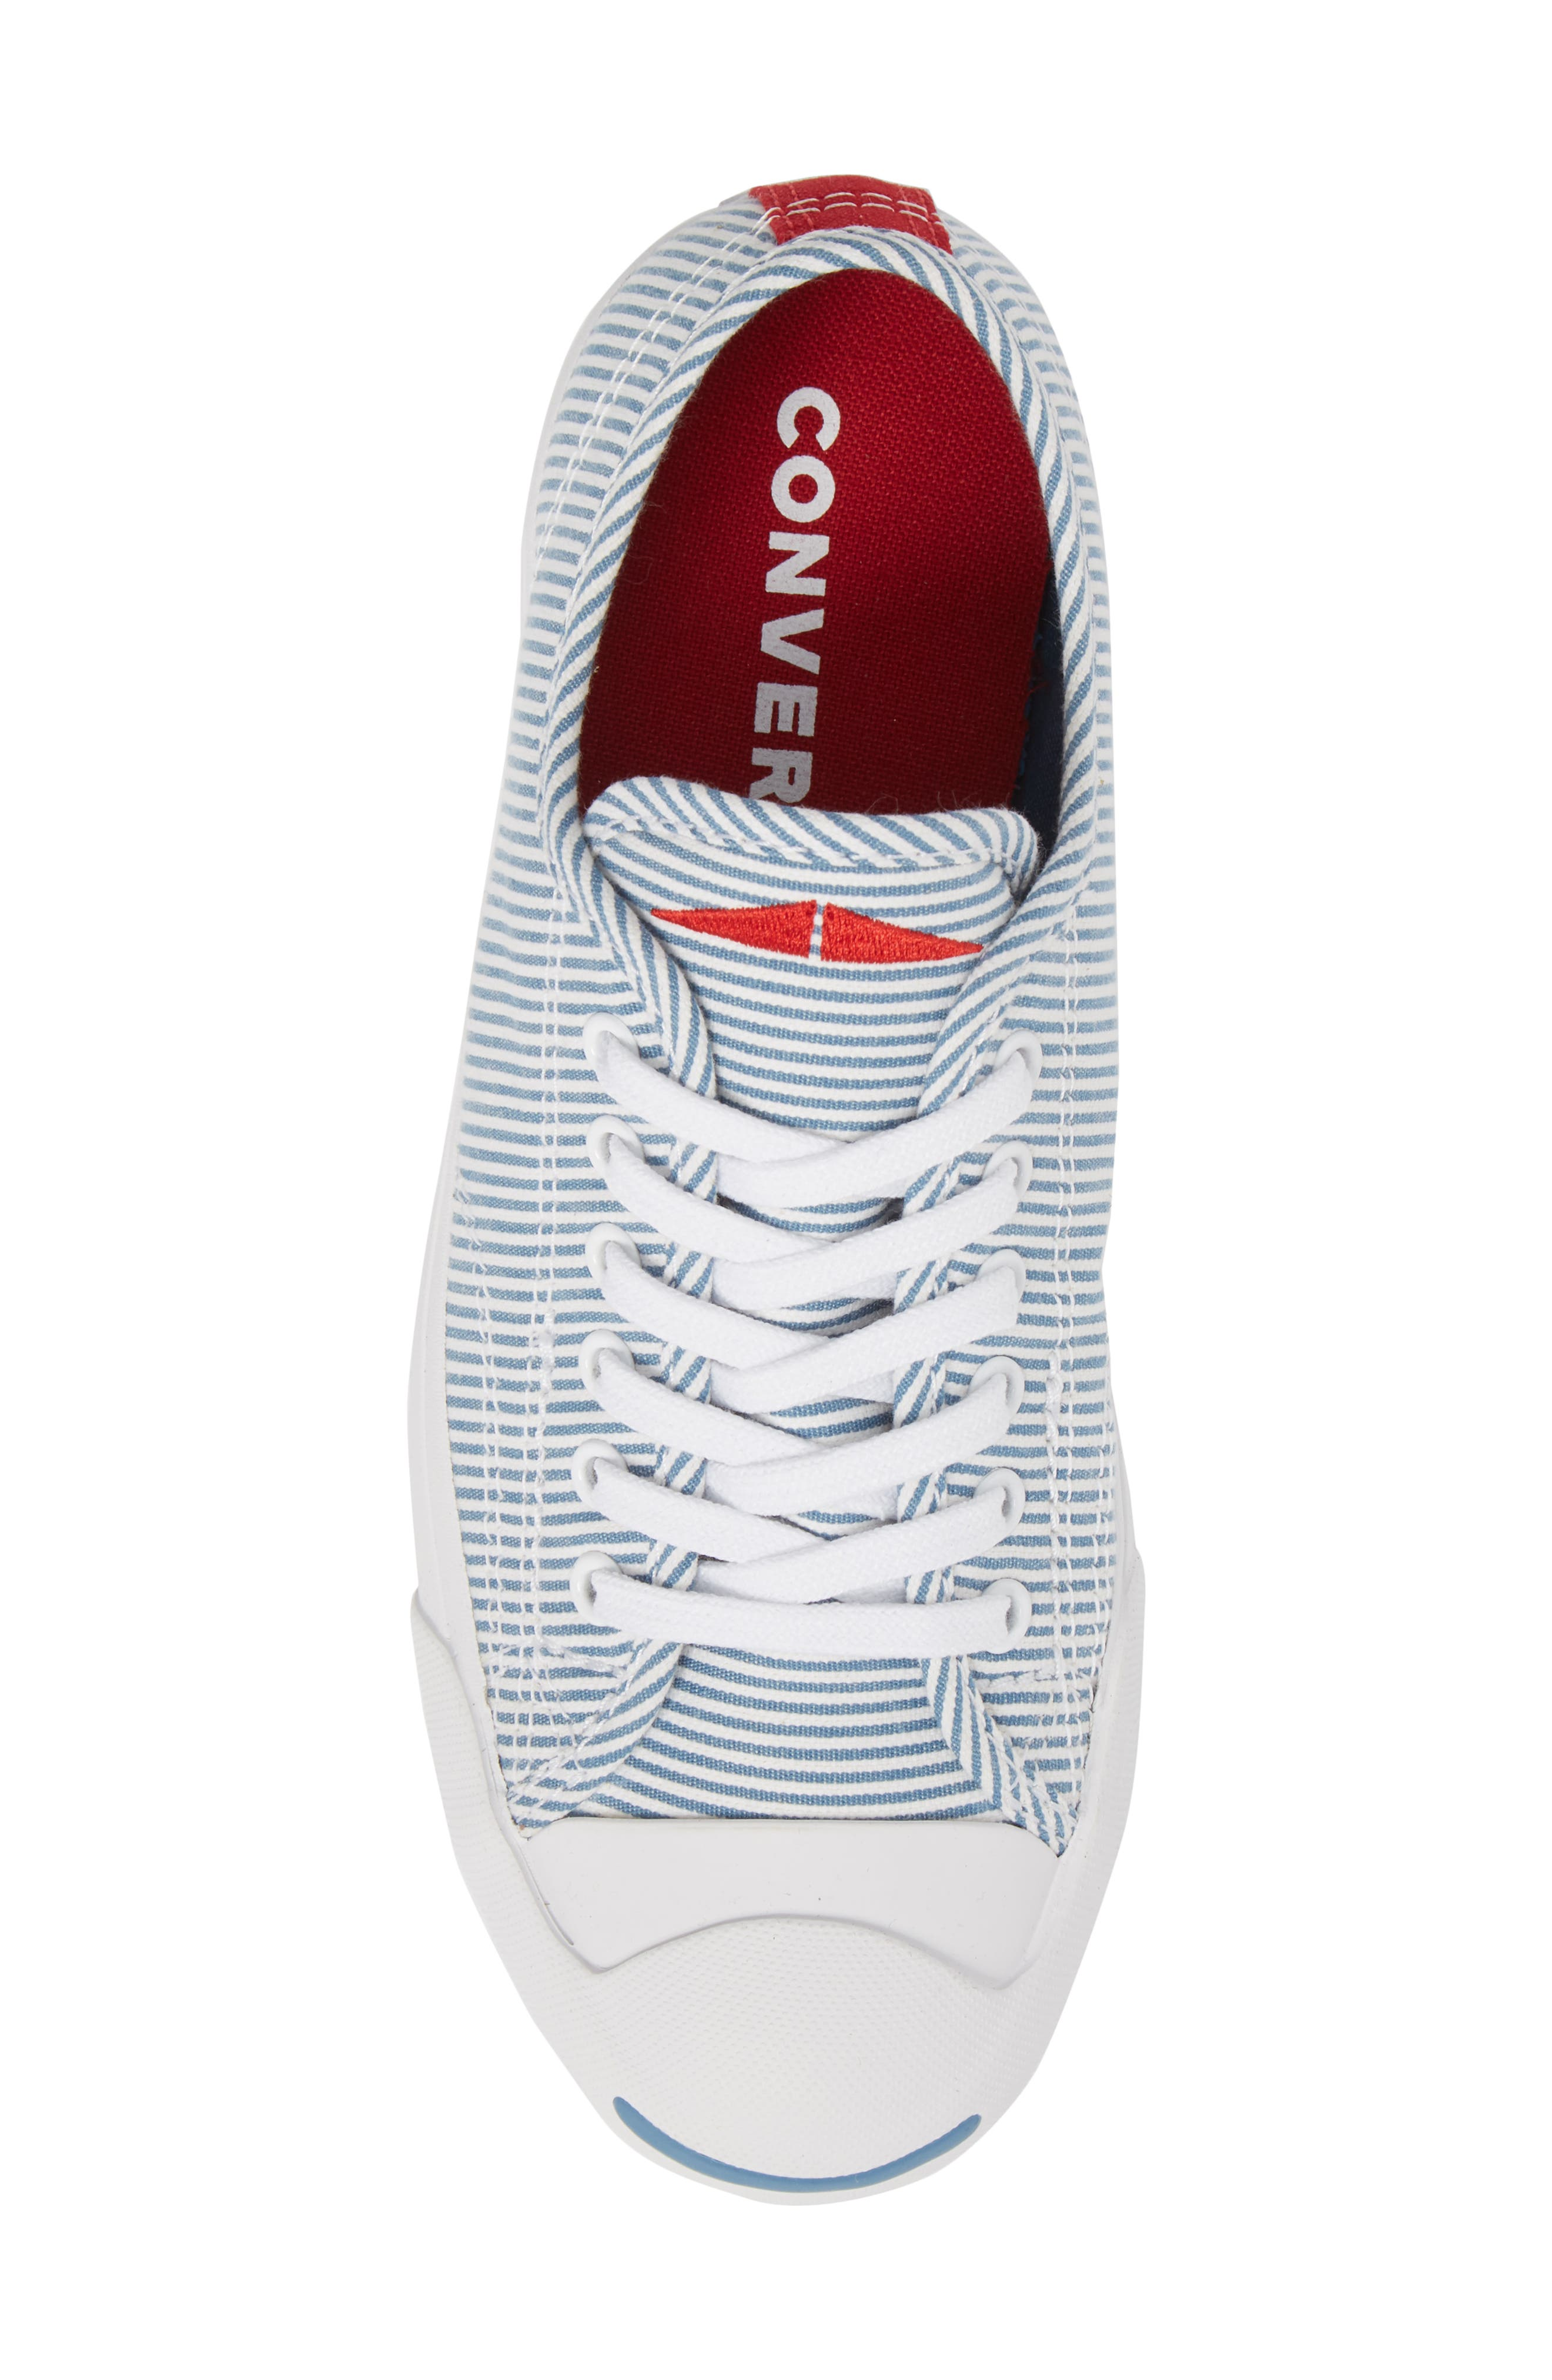 Jack Purcell Low Top Sneaker,                             Alternate thumbnail 5, color,                             Aegean Storm